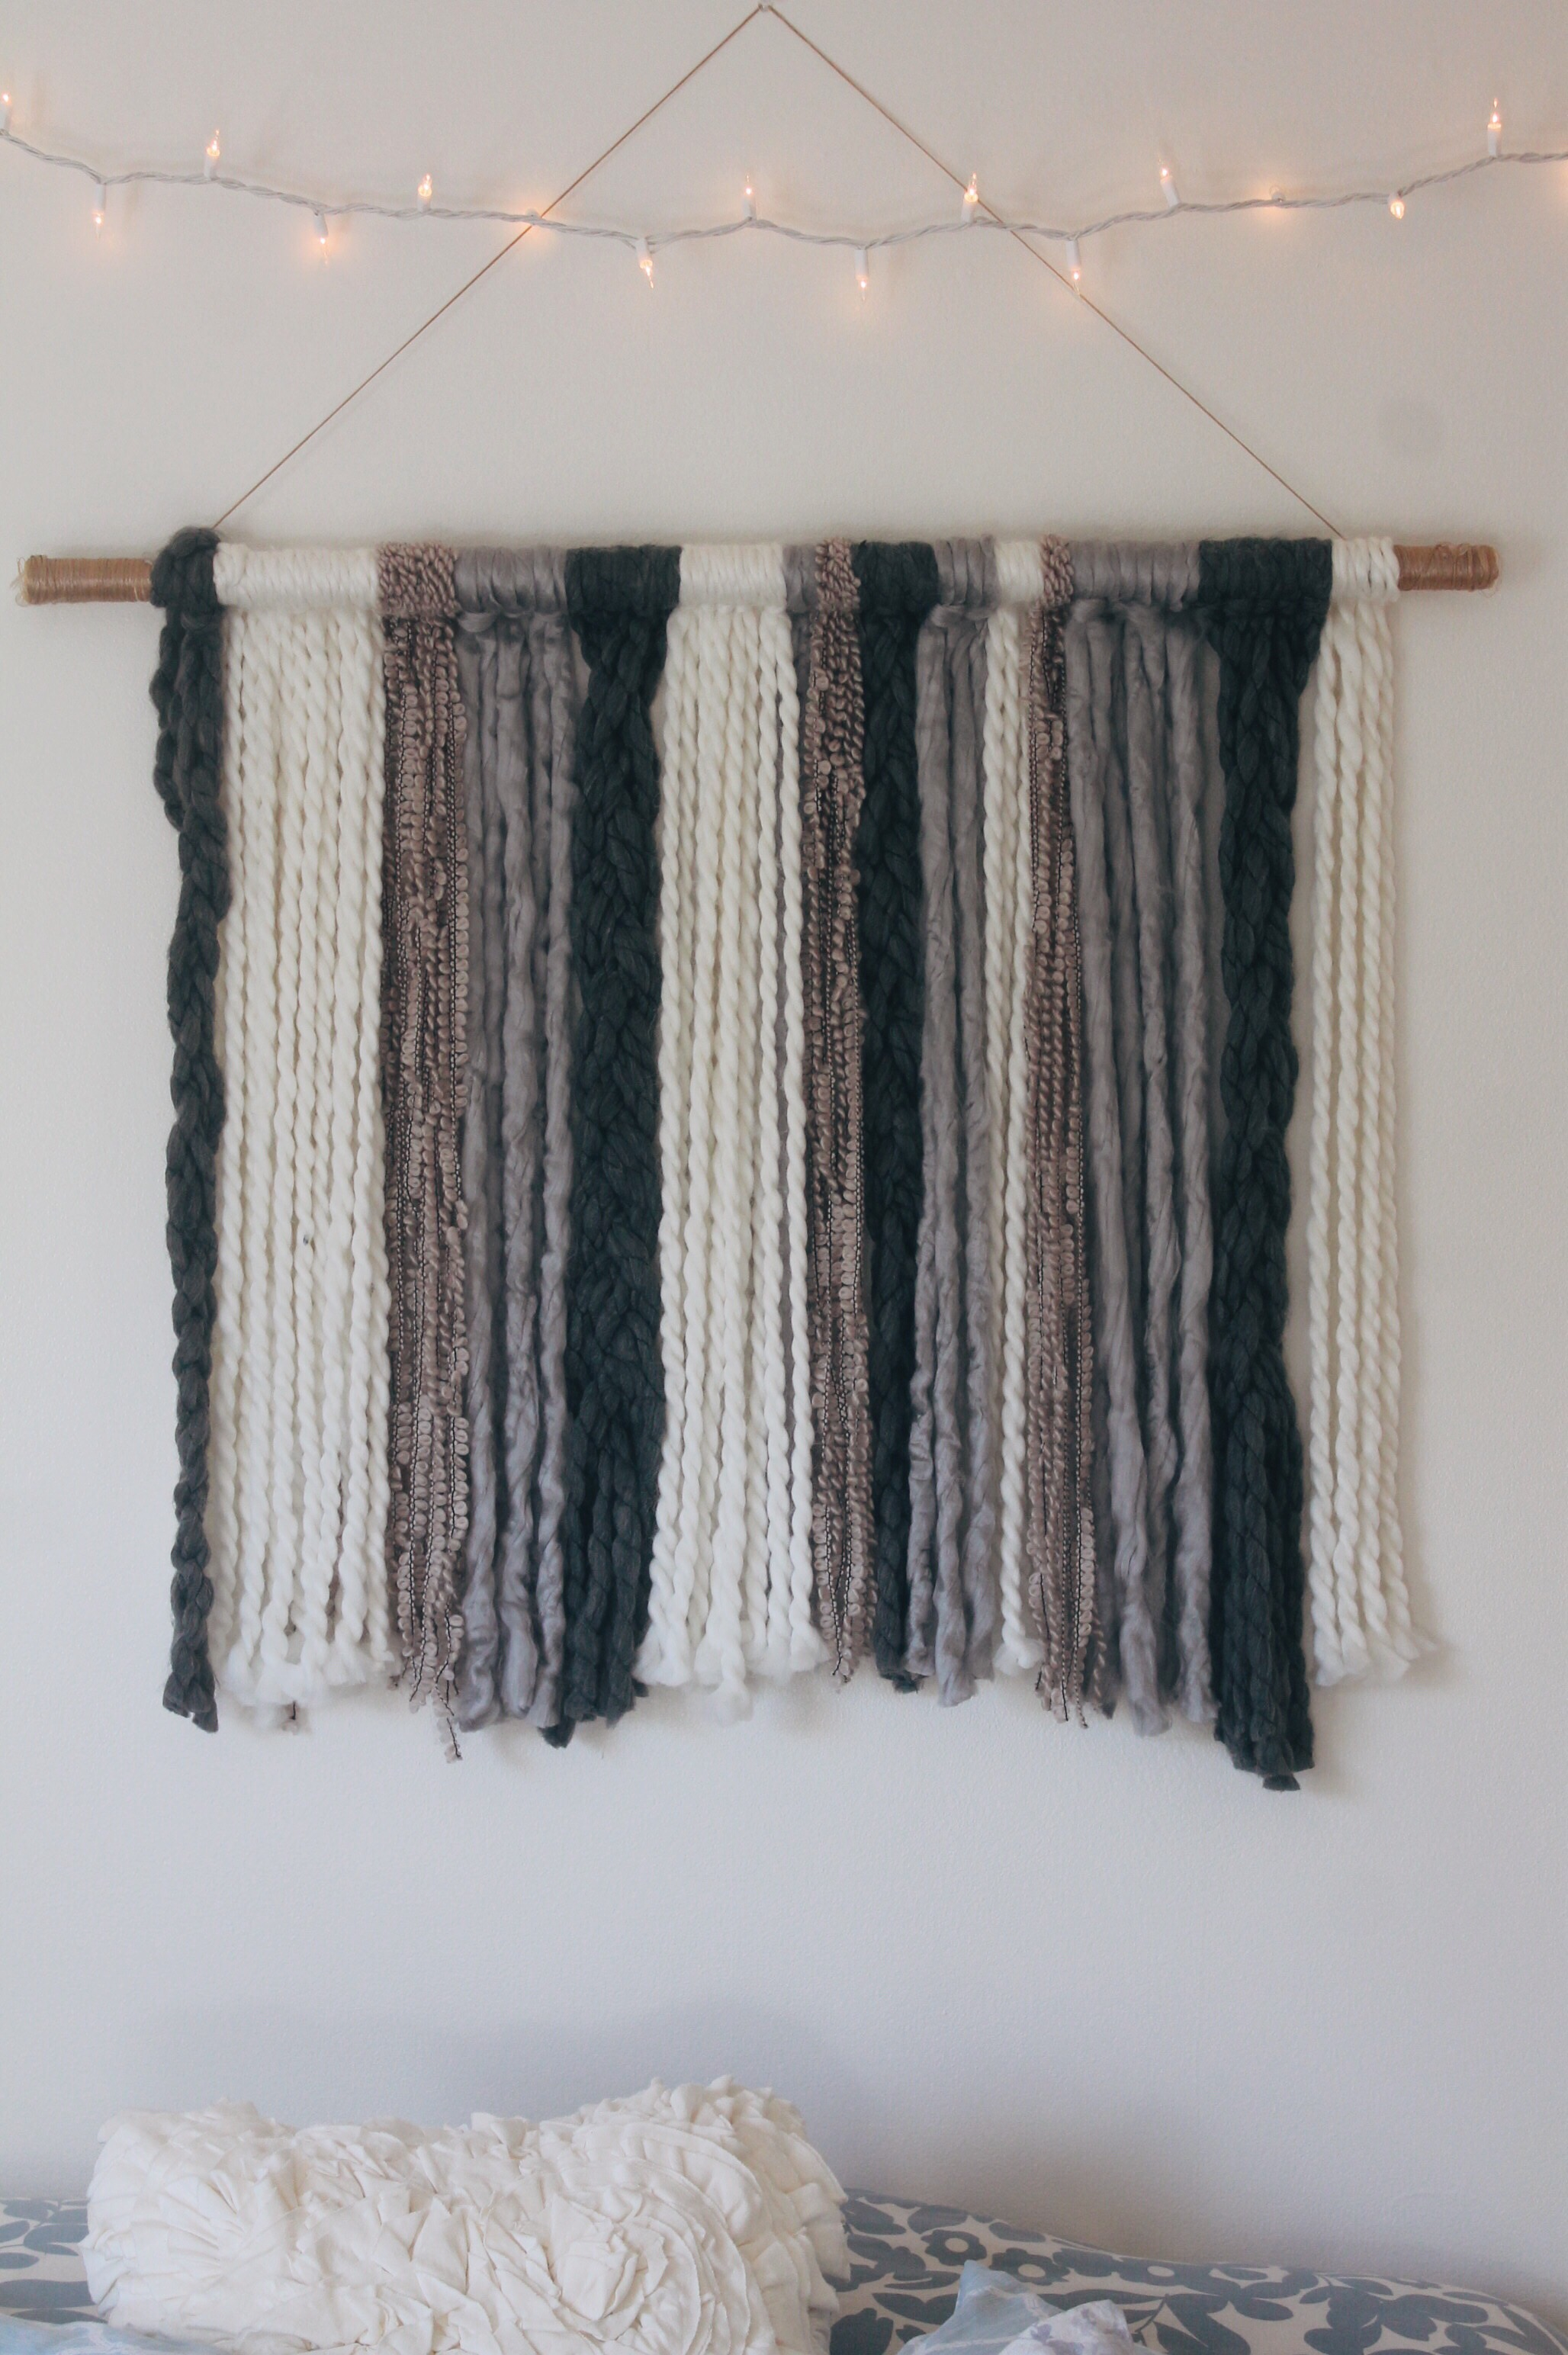 DIY Yarn Wall Tapestry